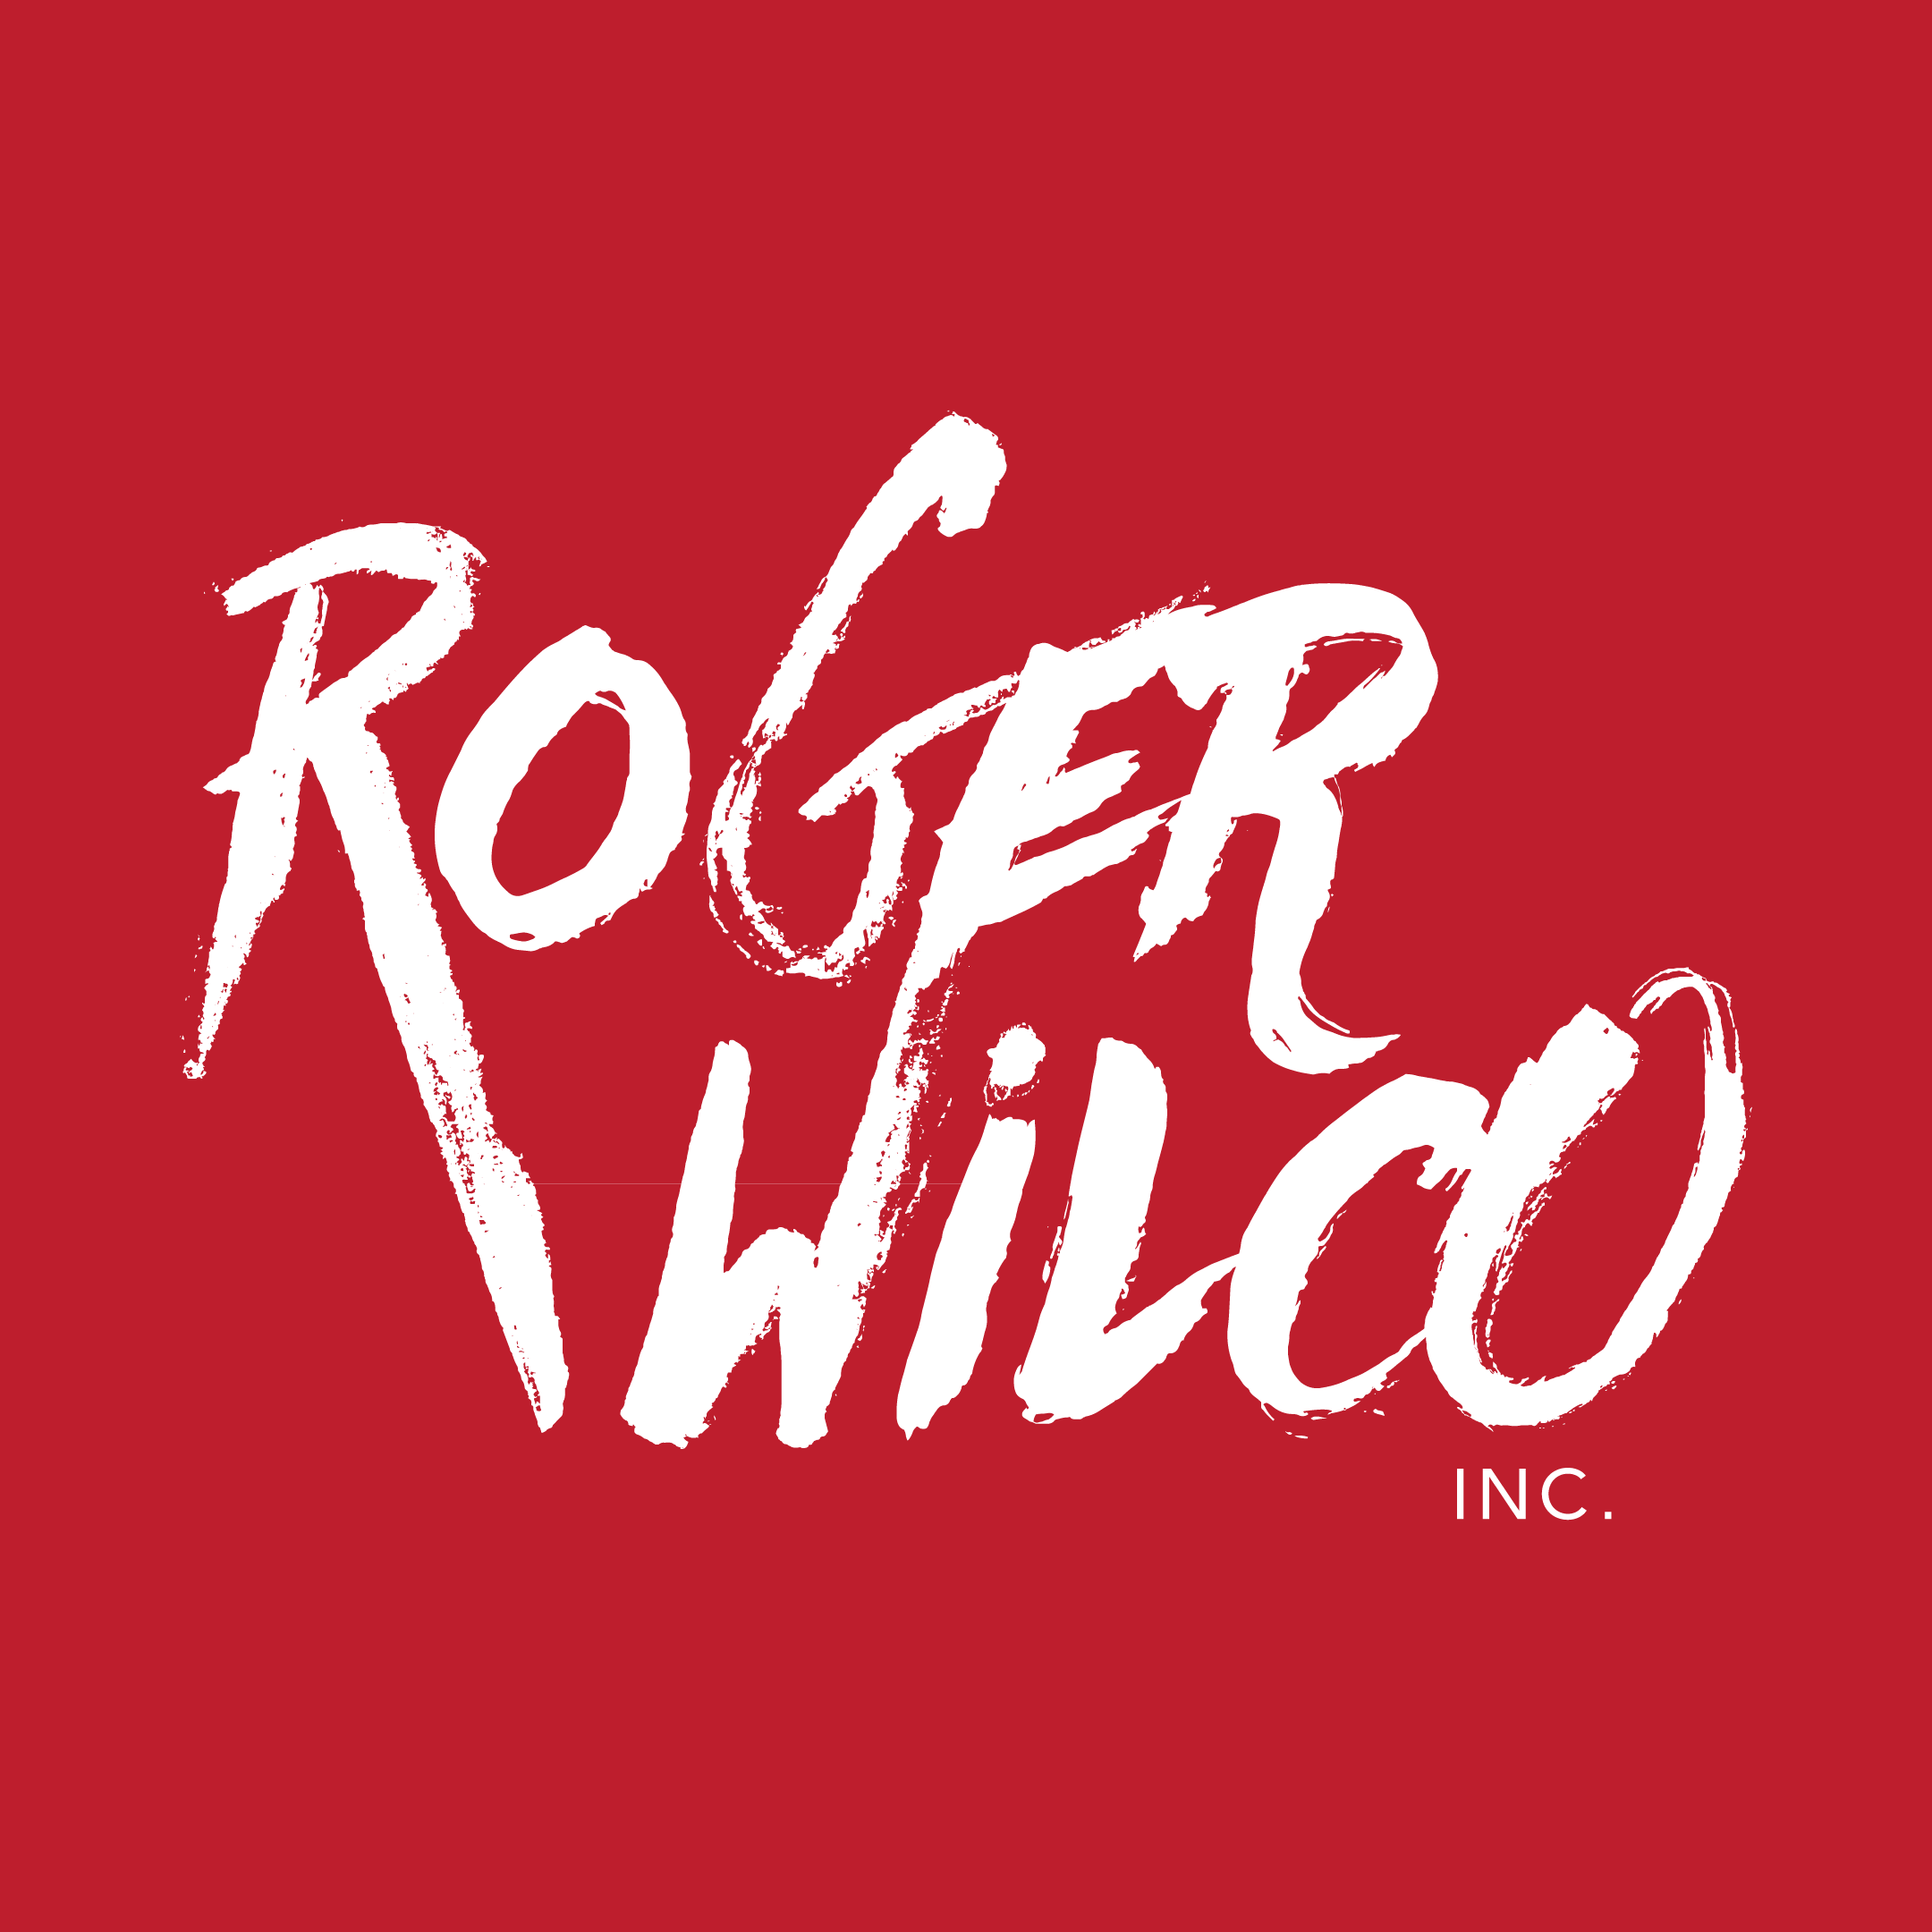 Roger Wilco Limited Liability Company